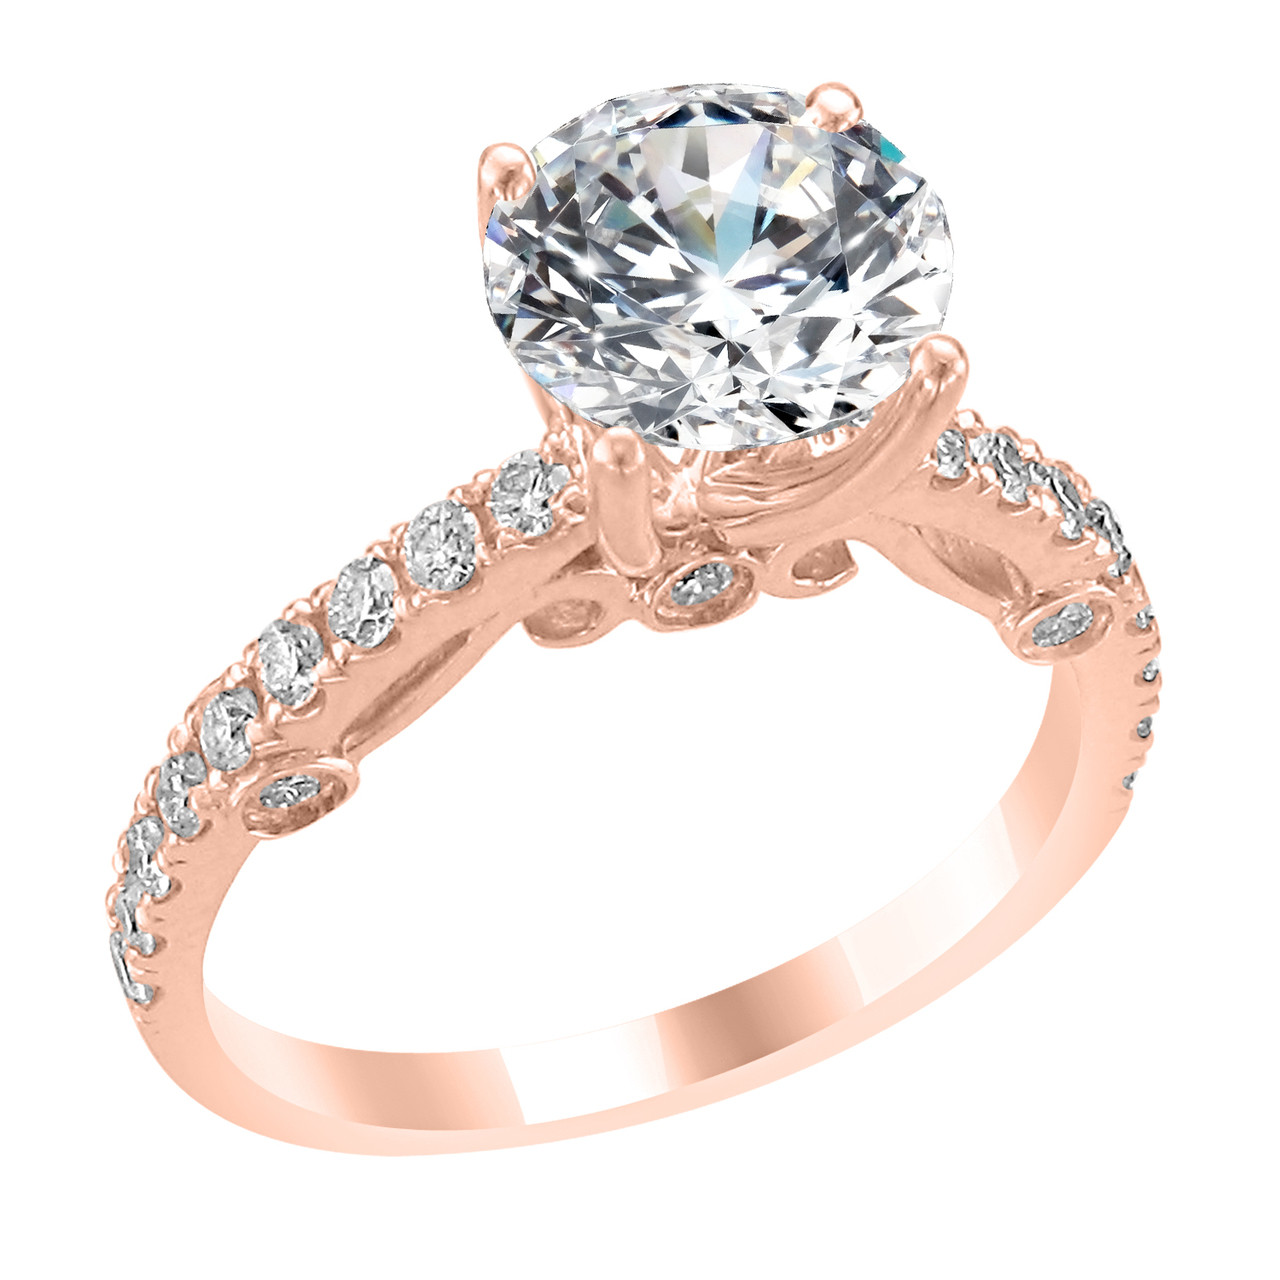 crafted in jewelry sway me romantic rings with halo oceanic luscious engagement custom ring products bashert spectacular gold rose oval cut diamond stunning